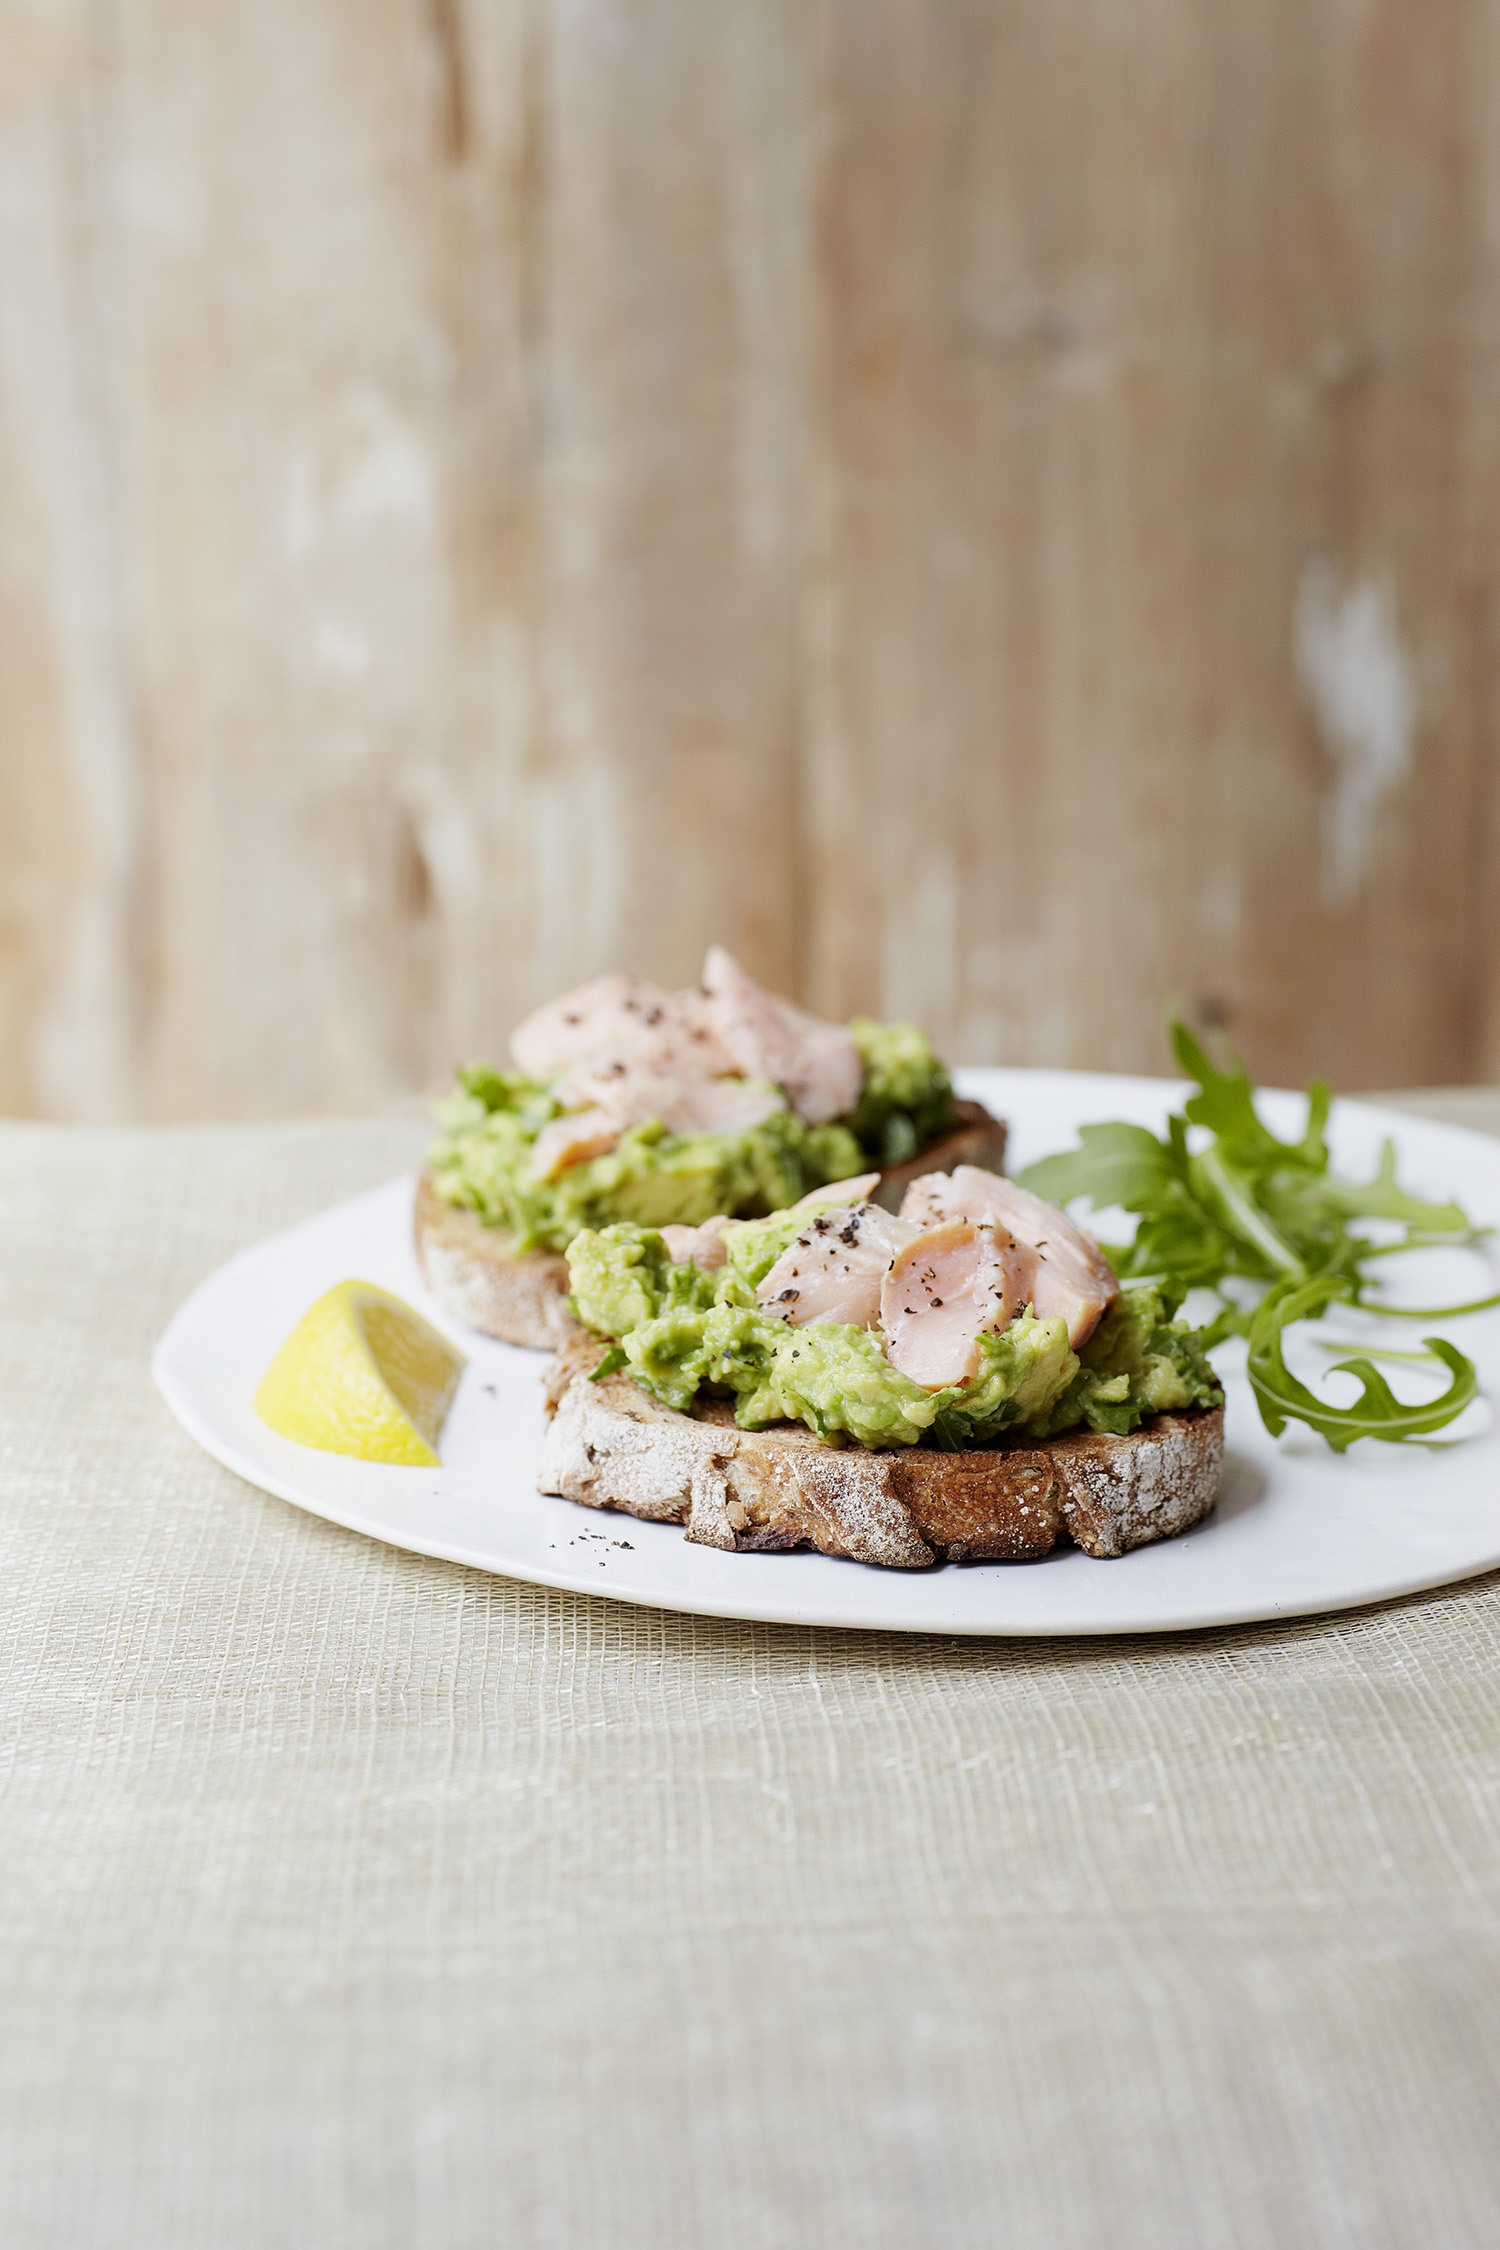 Lemony Avo with Rocket and Trout Photograph Clare Winfield, Prop Styling Wei Tang (from The Goodness of Avocado)